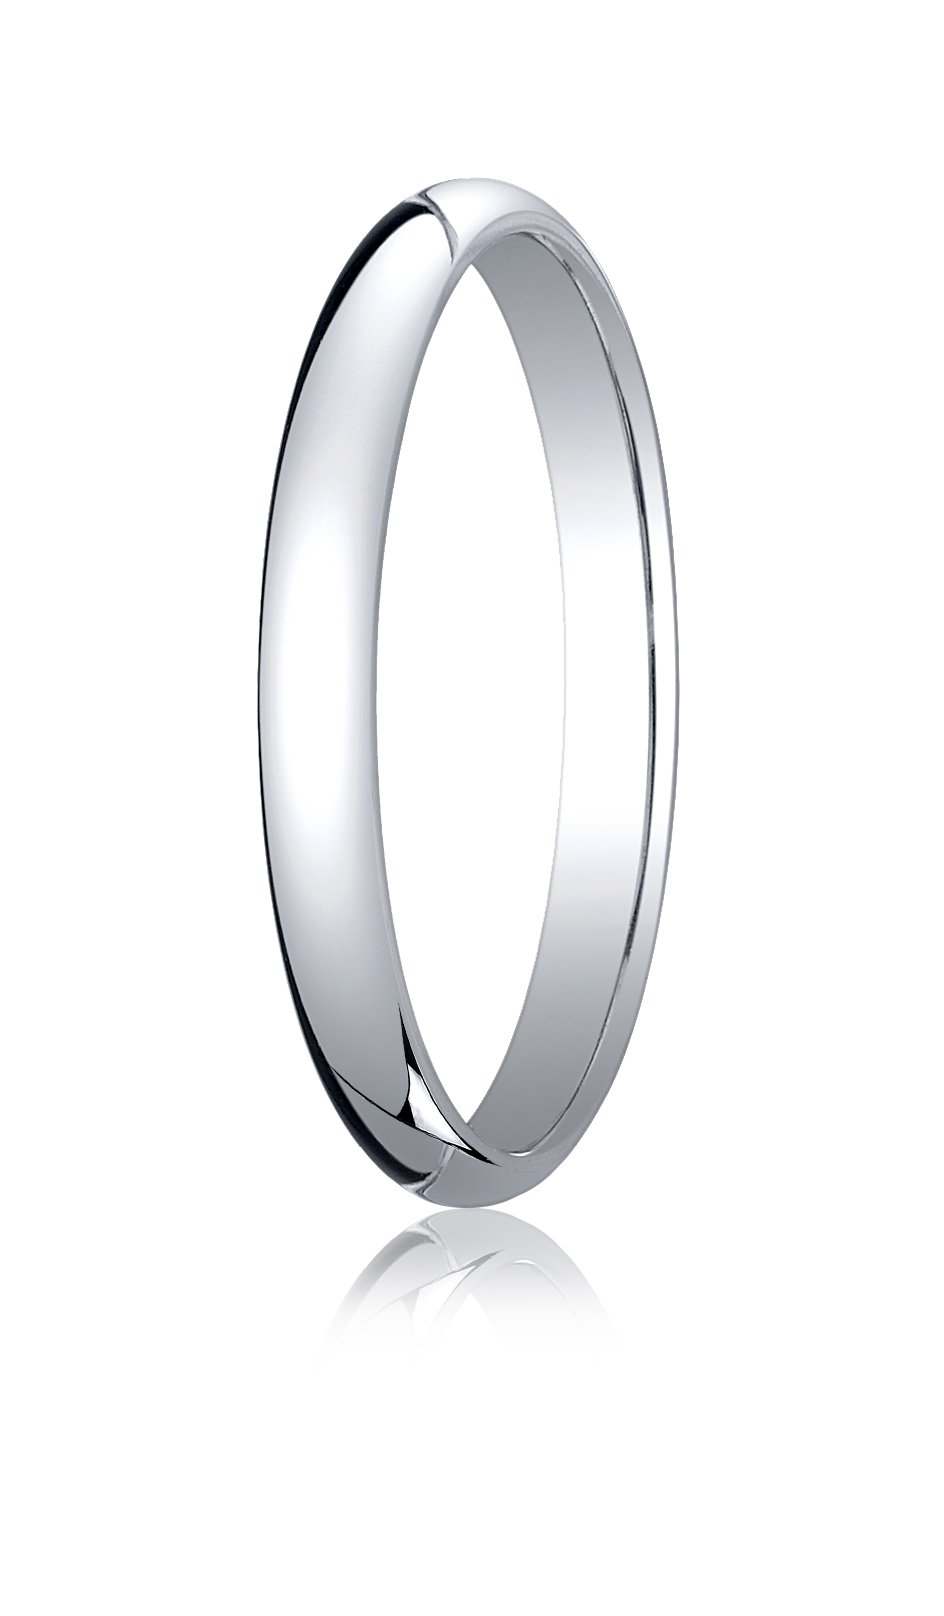 Mens Platinum, 2.5mm Traditional Dome Oval Ring (sz 11)